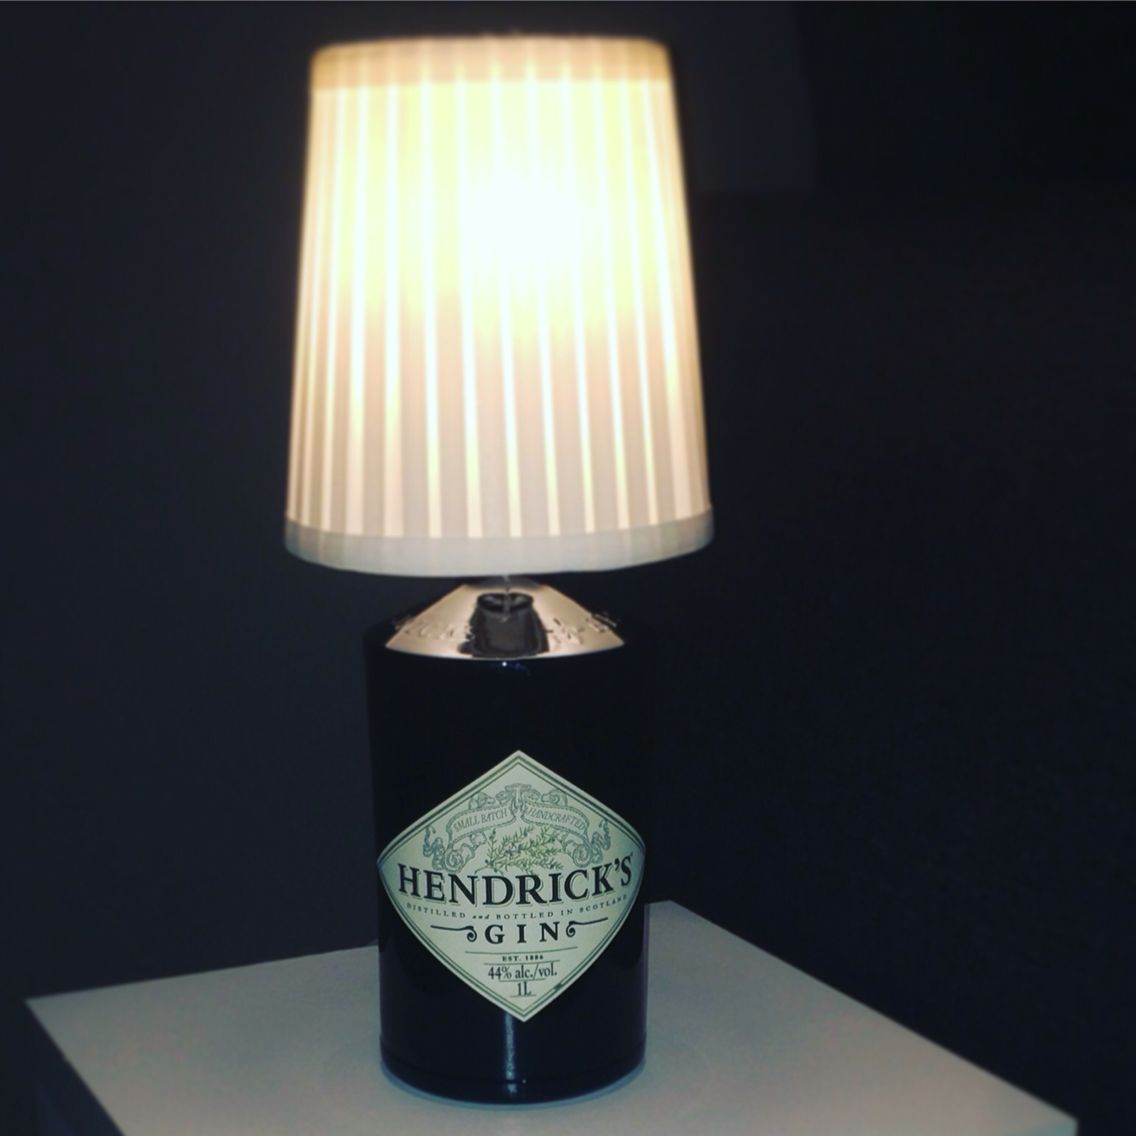 Gin hendricks bottle lamp do it yourself zmir pinterest gin hendricks bottle lamp do it yourself solutioingenieria Images